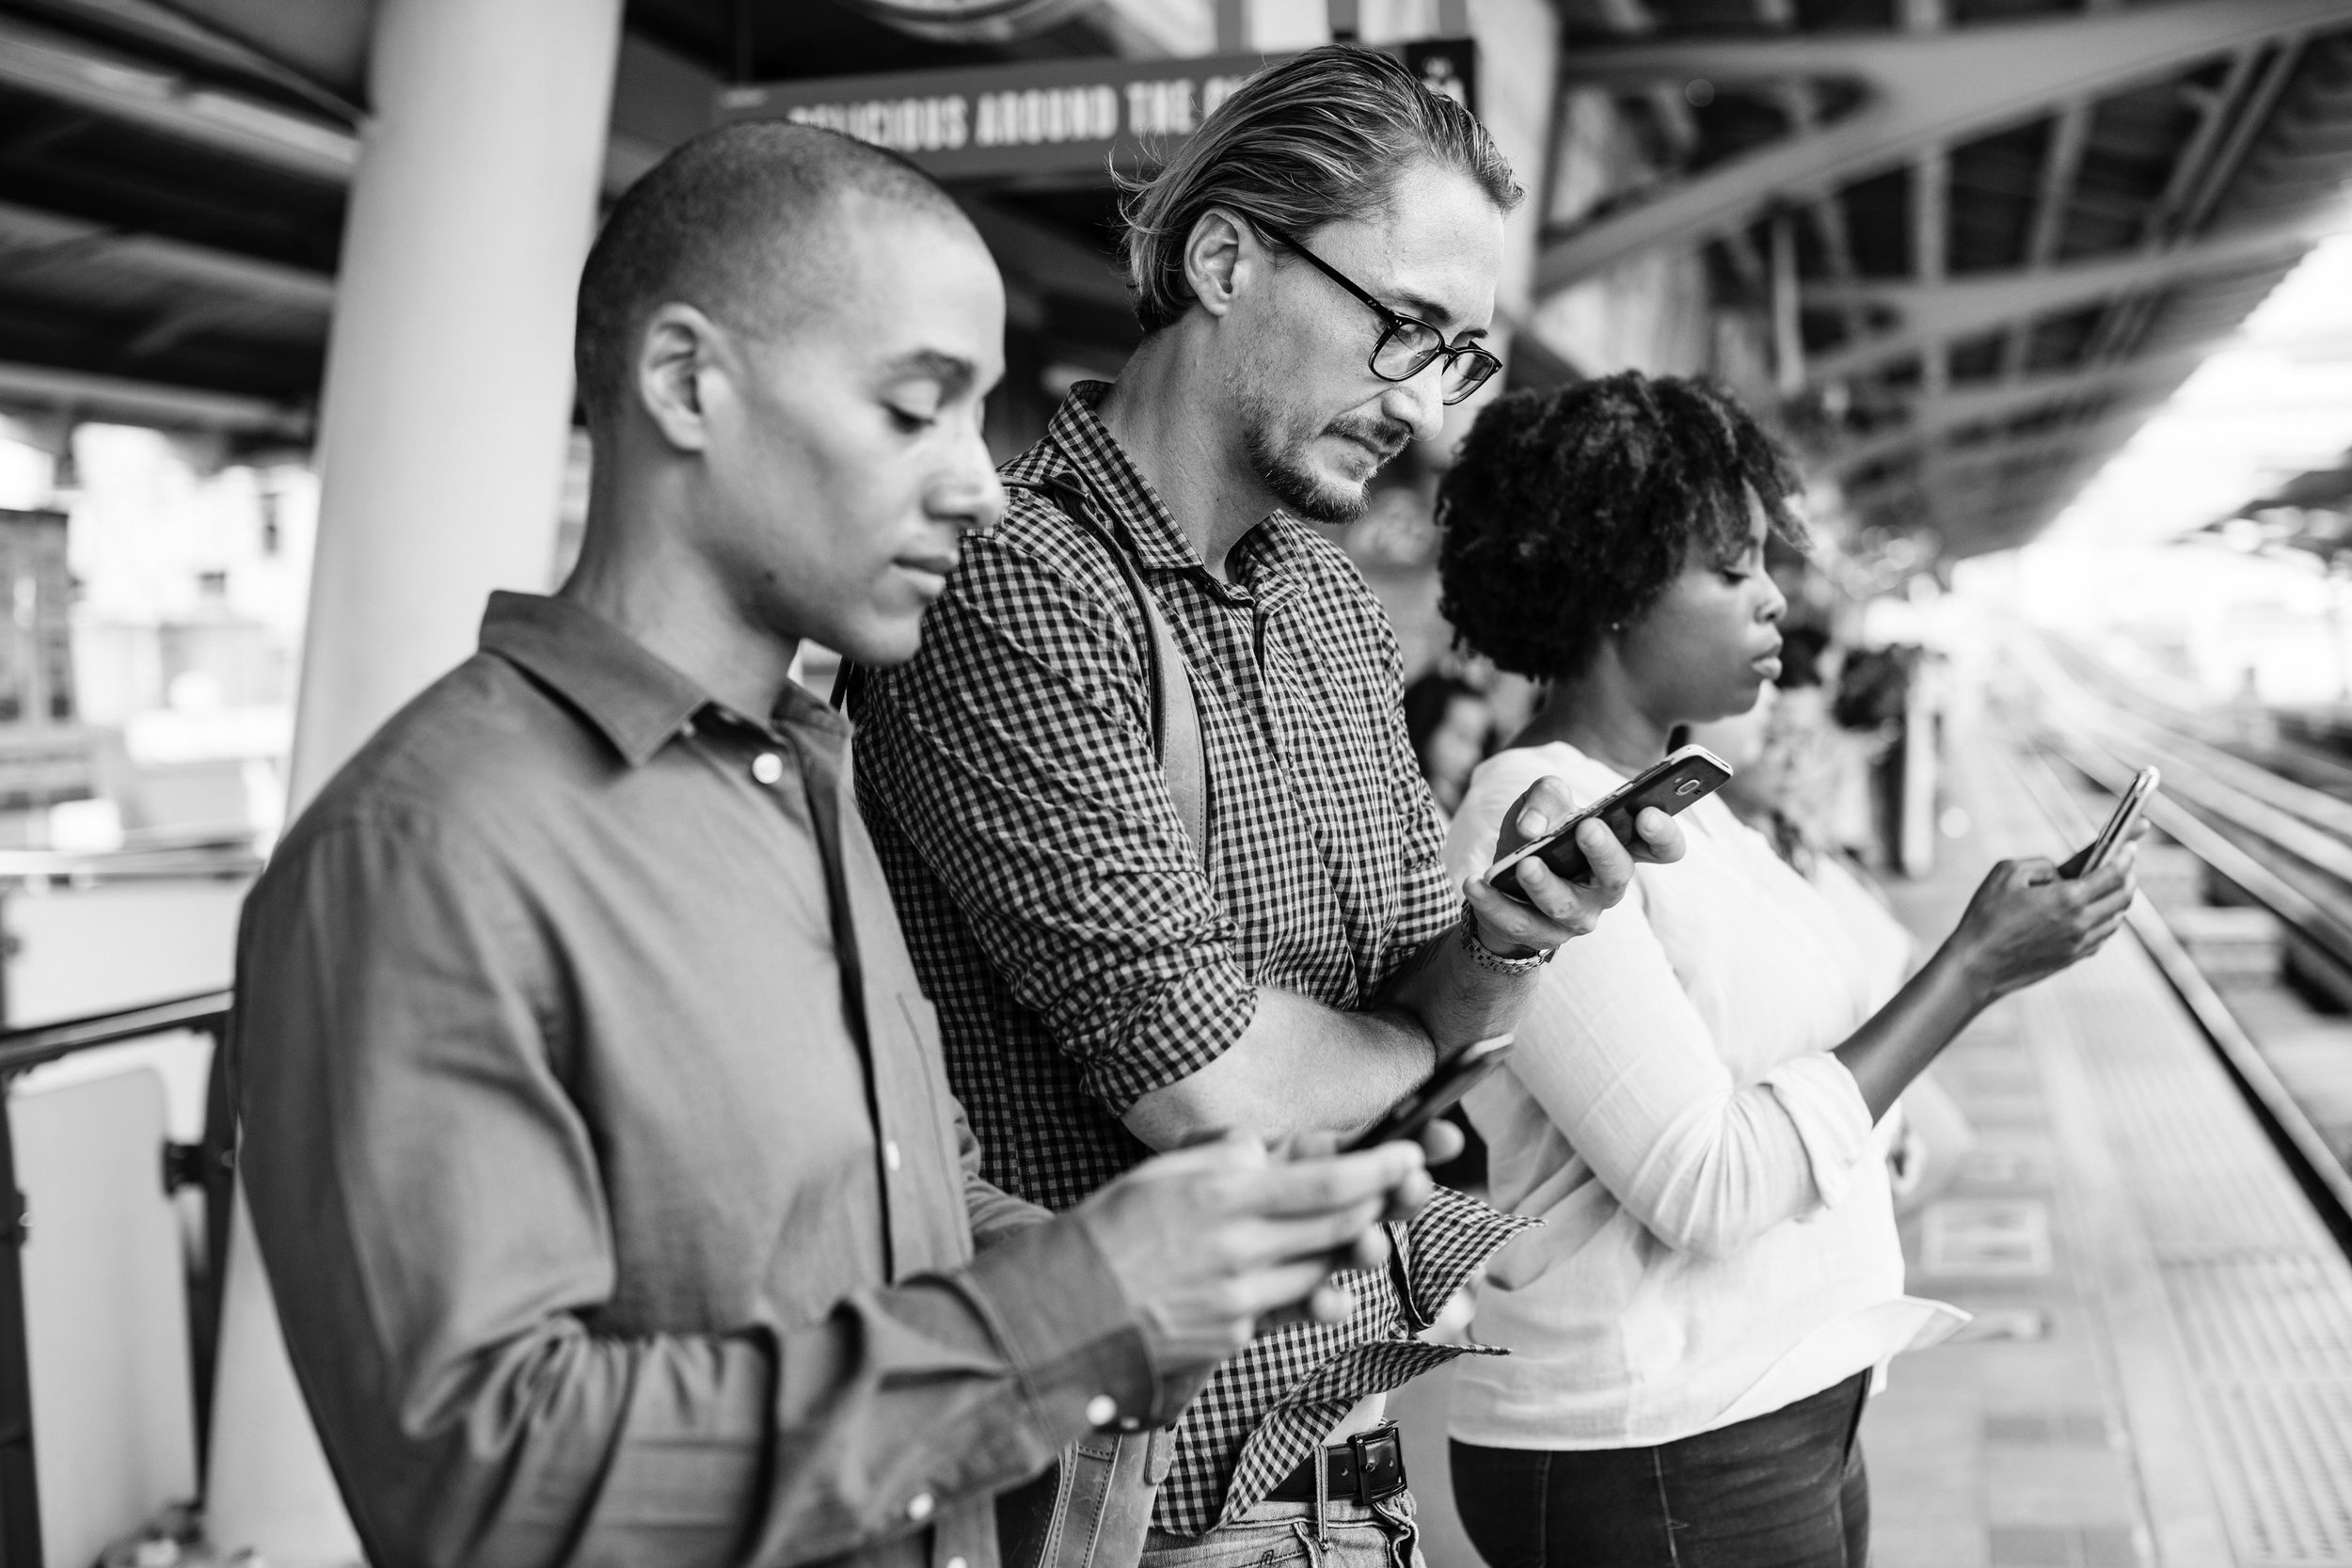 three-adults-using-smartphones-on-train-platform-bw.jpg